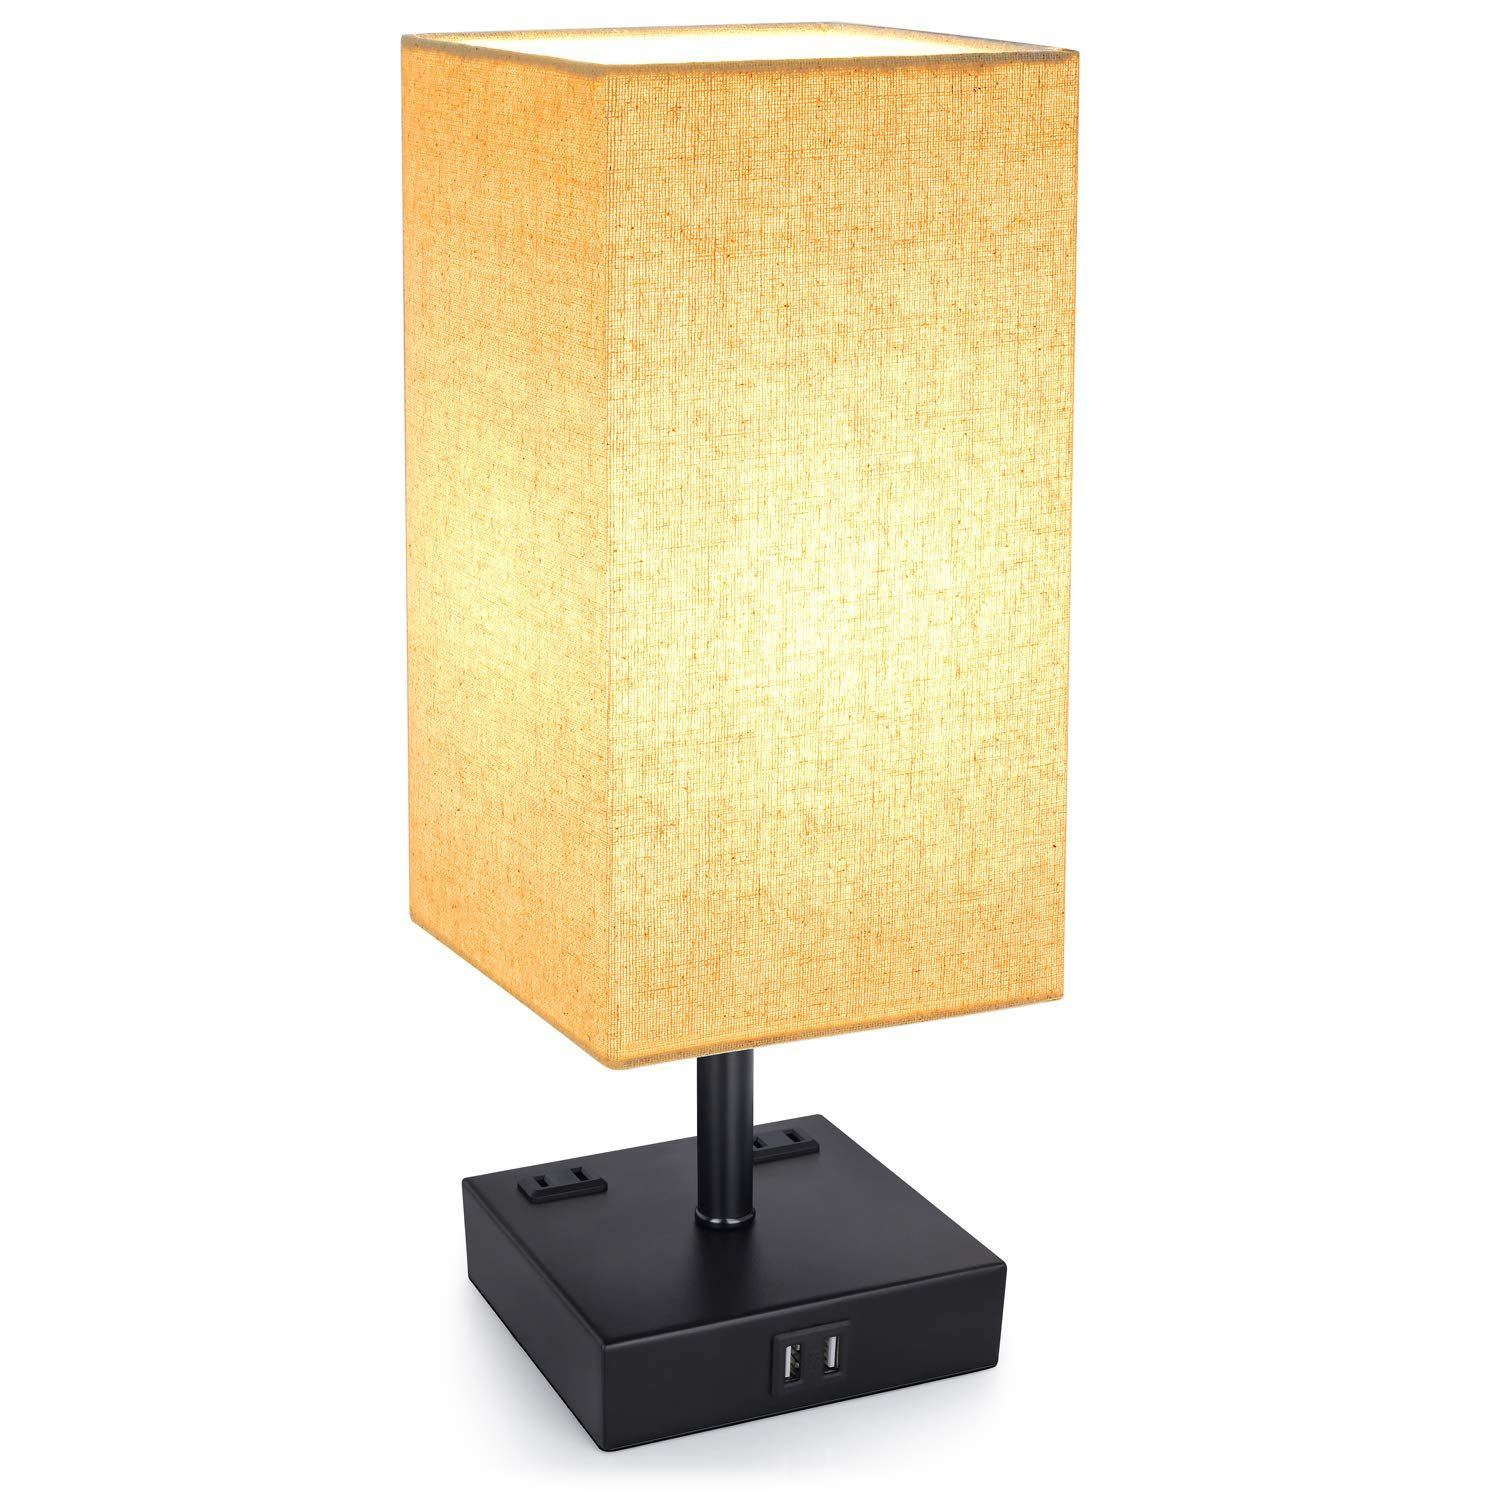 Bedside Light With Usb Port Dimmable Table Lamp Bedside Lamp